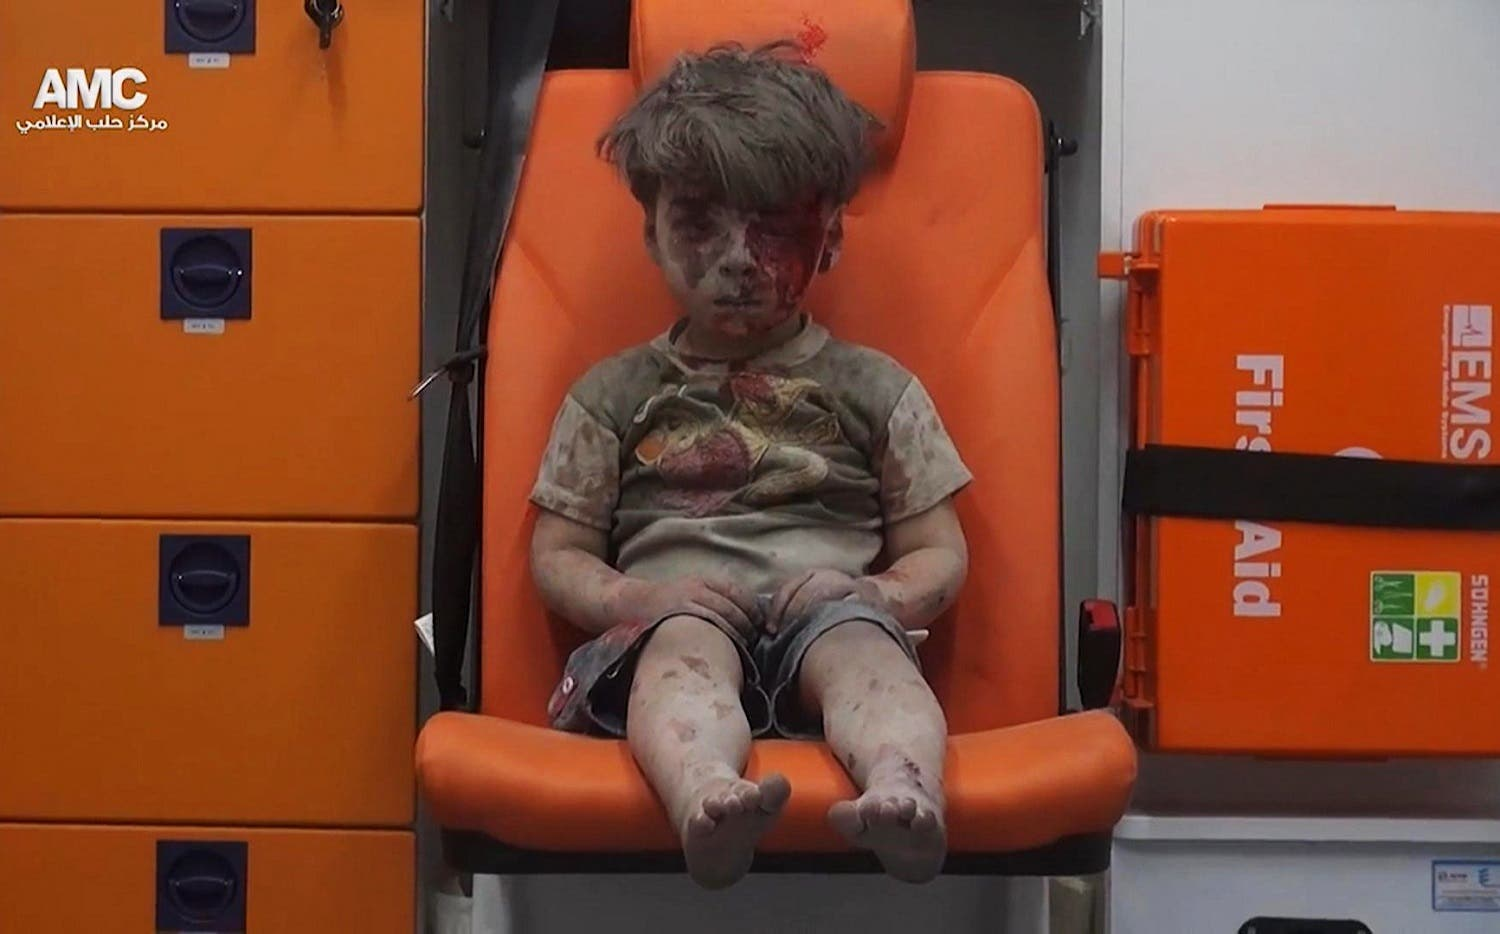 Five-year-old Omran Daqneesh sits in an ambulance after being pulled out of a building hit by an airstrike in Aleppo, Syria, on Aug. 17, 2016 (File Photo: AFP/Aleppo Media Center)